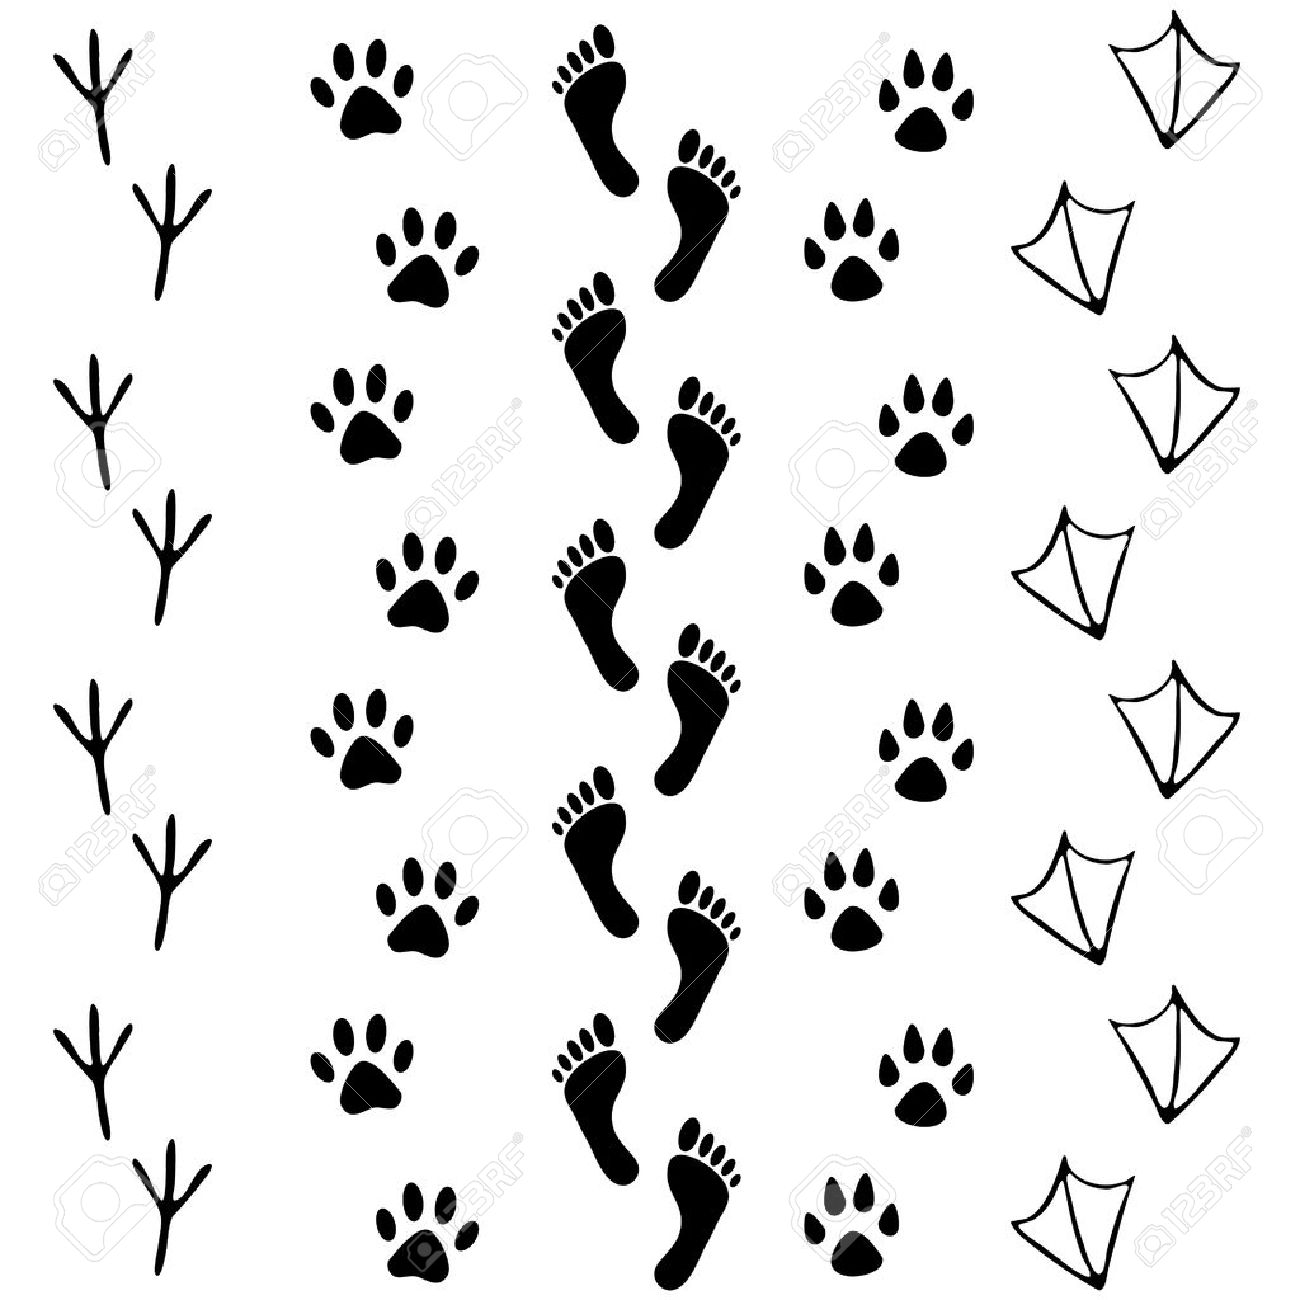 vector set of human and animal bird footprints icon collection